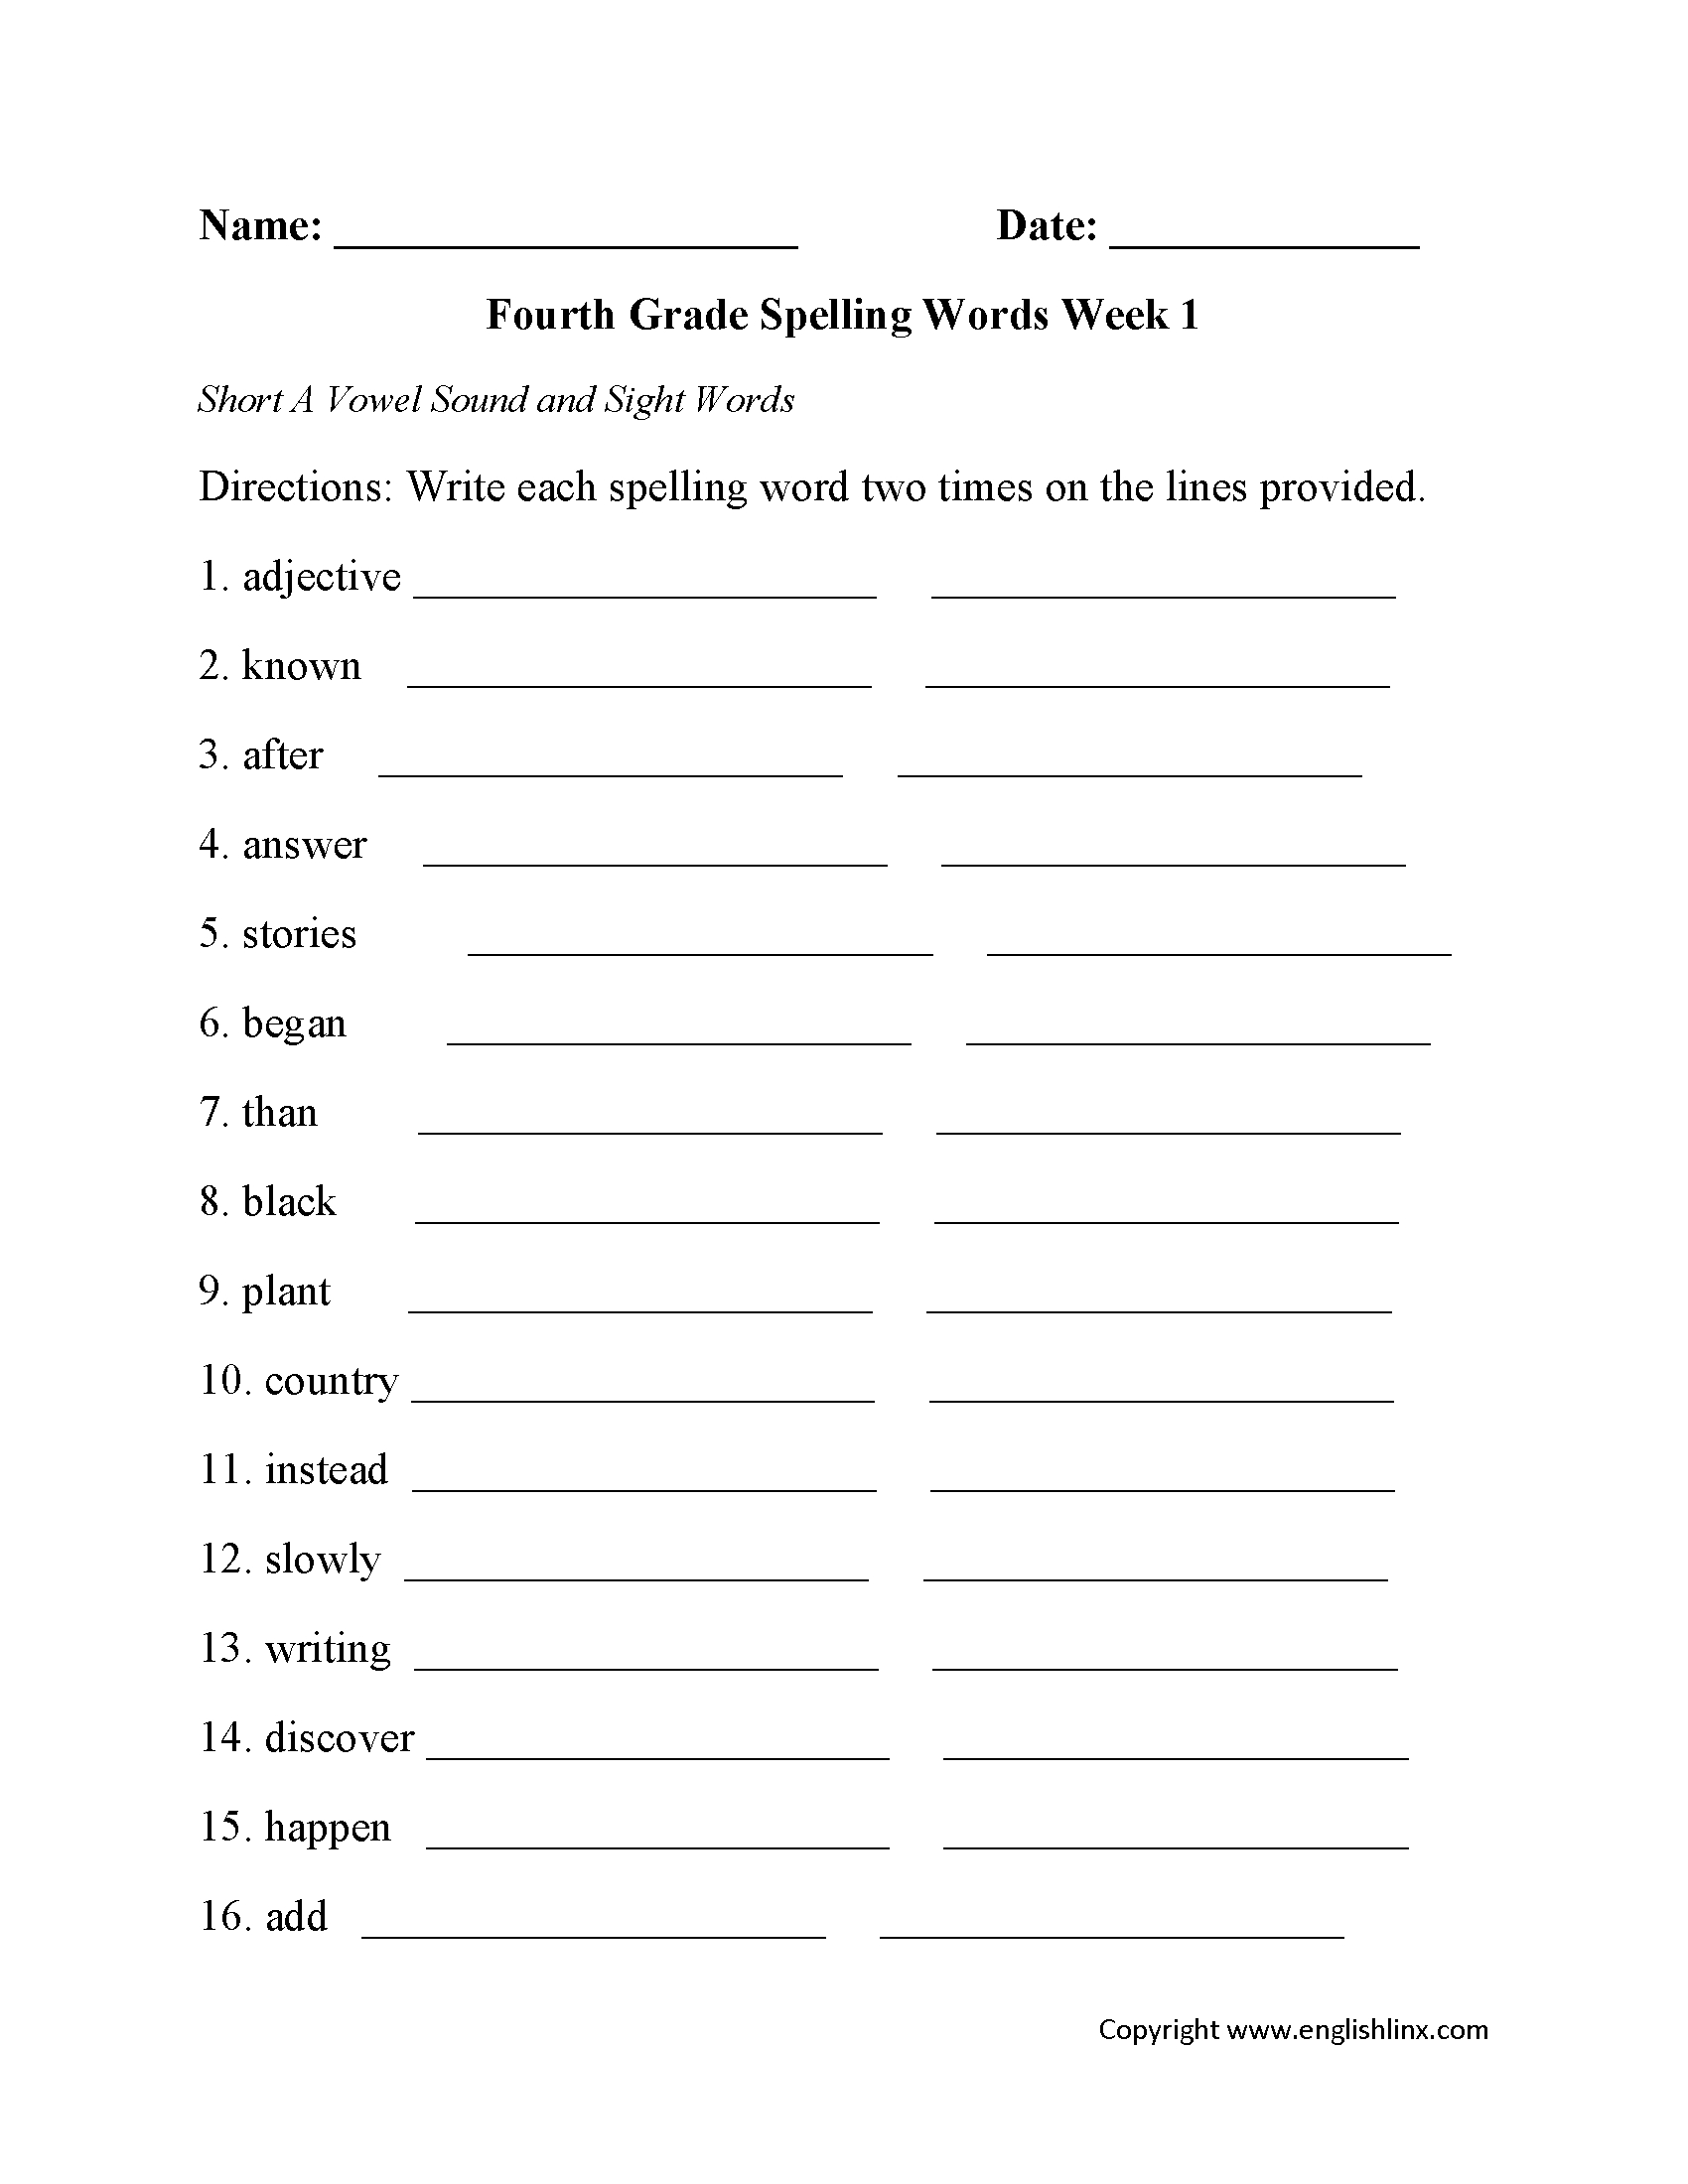 Spelling Worksheets | Fourth Grade Spelling Worksheets | Free Printable Spelling Worksheets